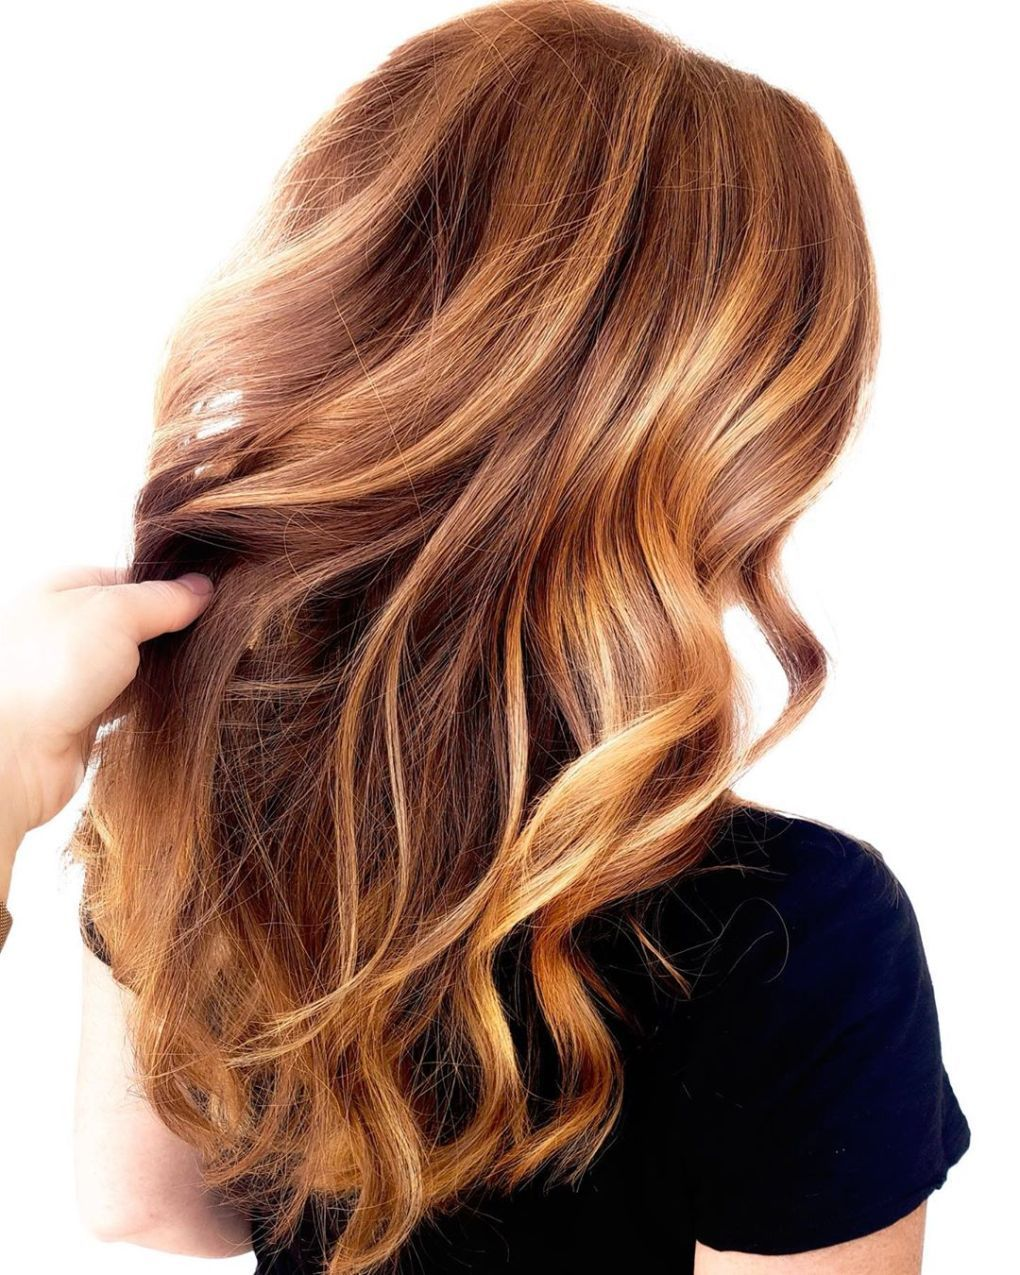 30 Trendy Strawberry Blonde Hair Colors & Styles for 2020 – Hair Adviser